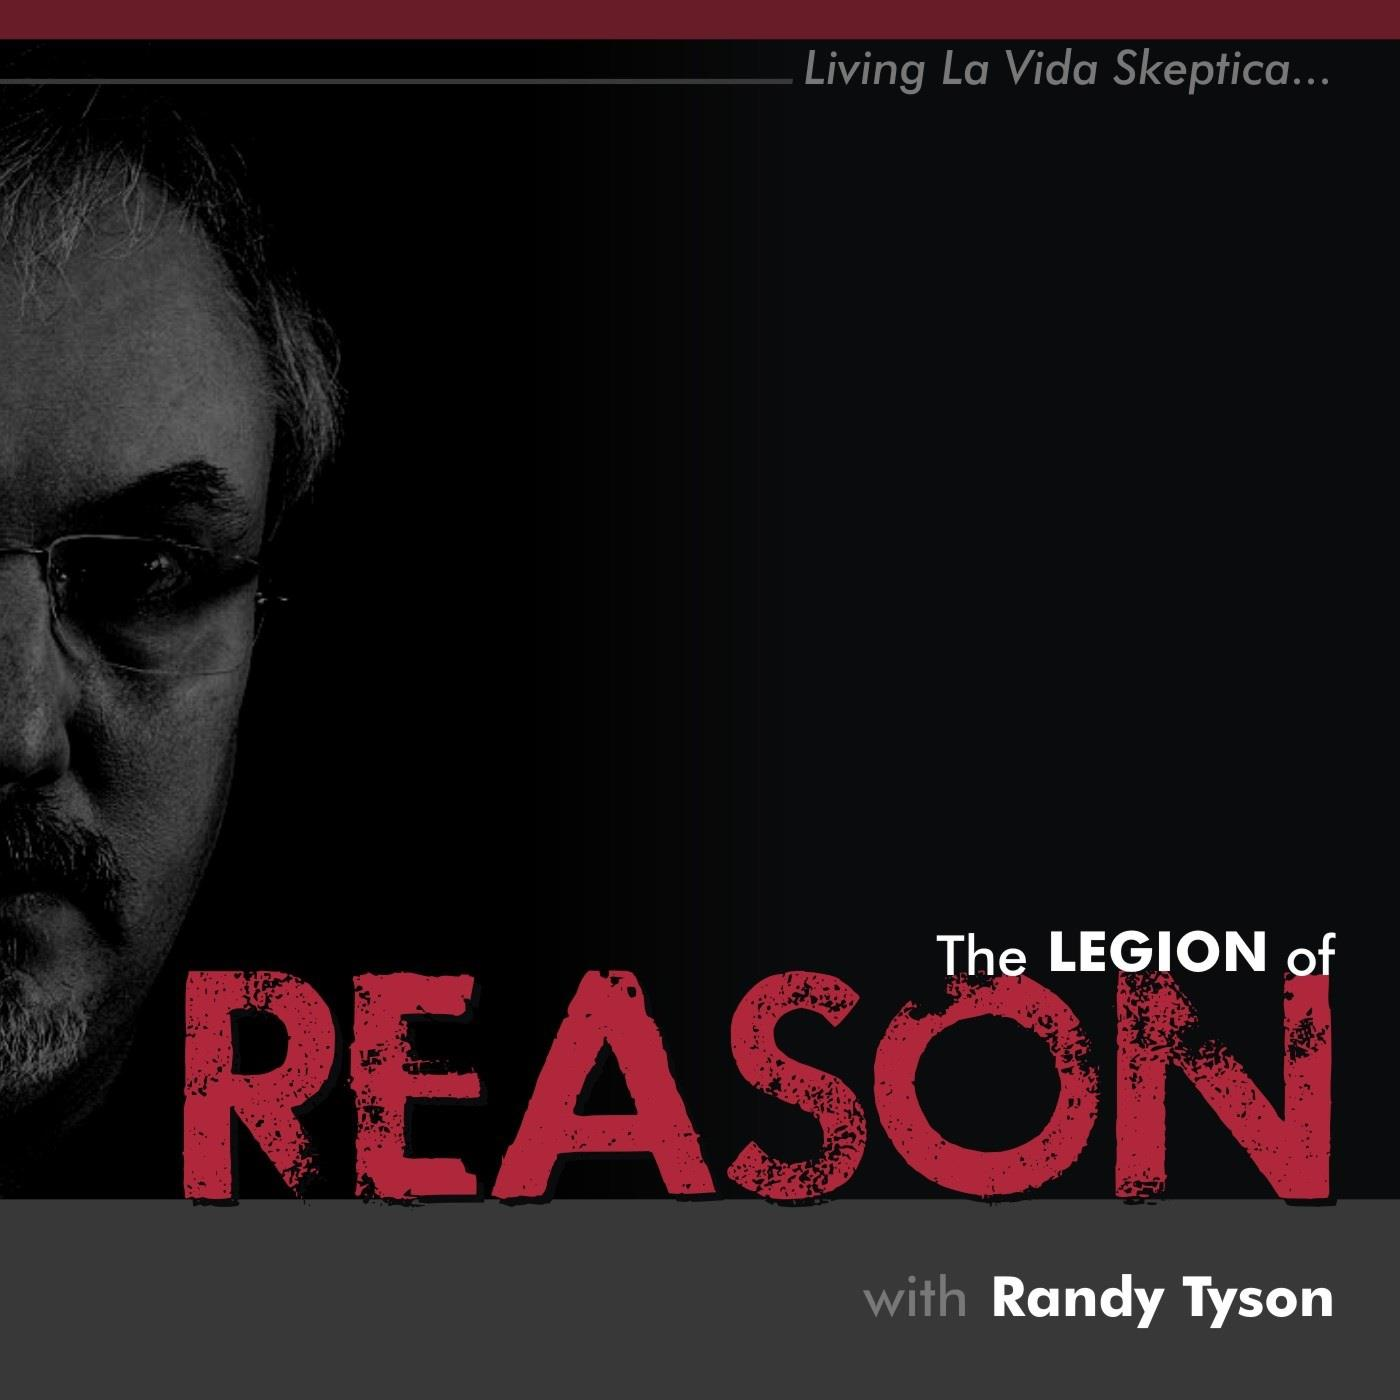 Click through the image to get to the Legion of Reason facebook page